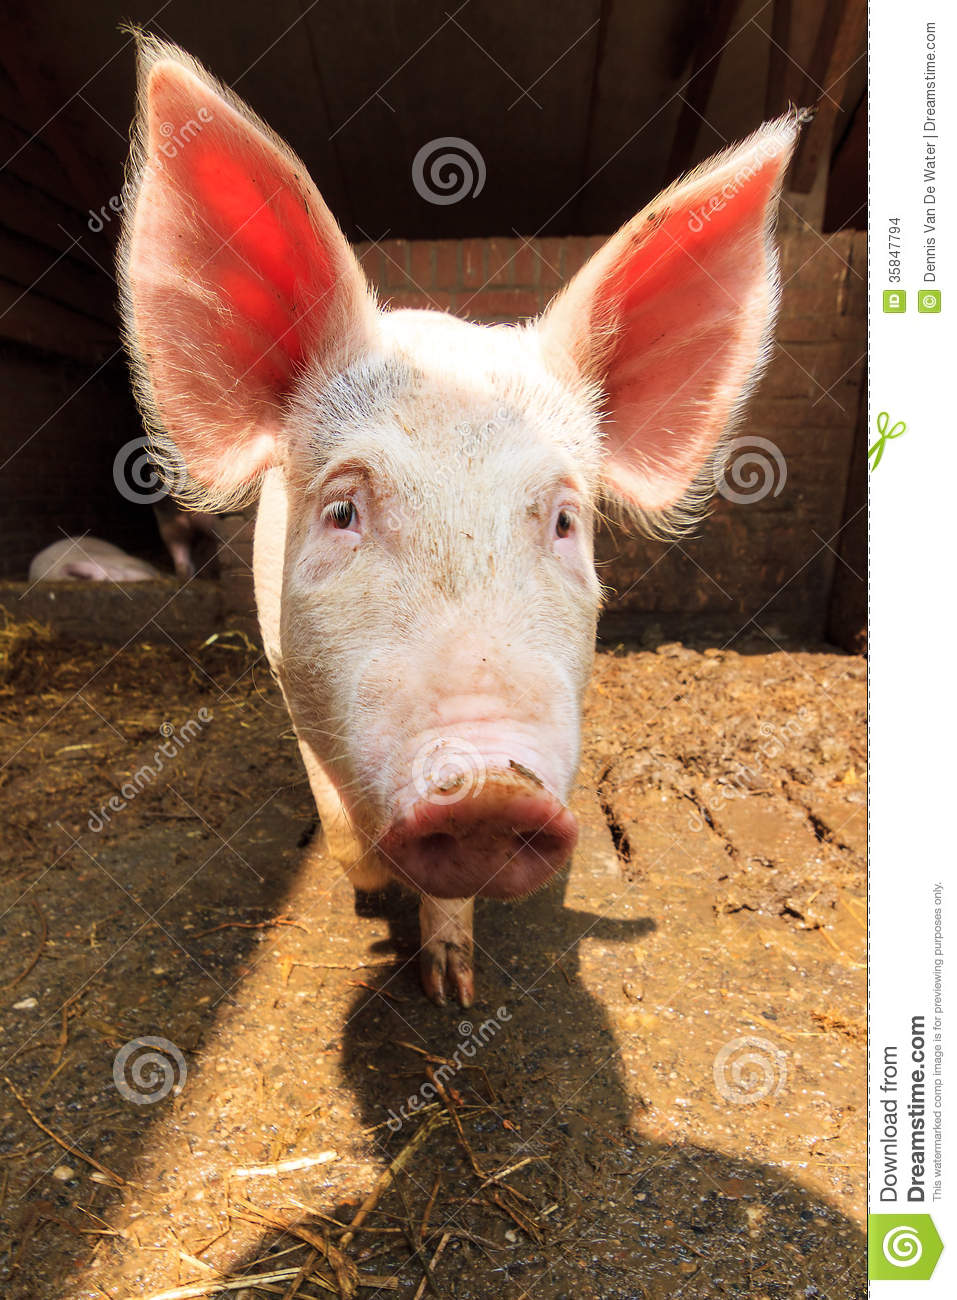 Pig With Big Ears Stock Photo Image Of Cute Ears